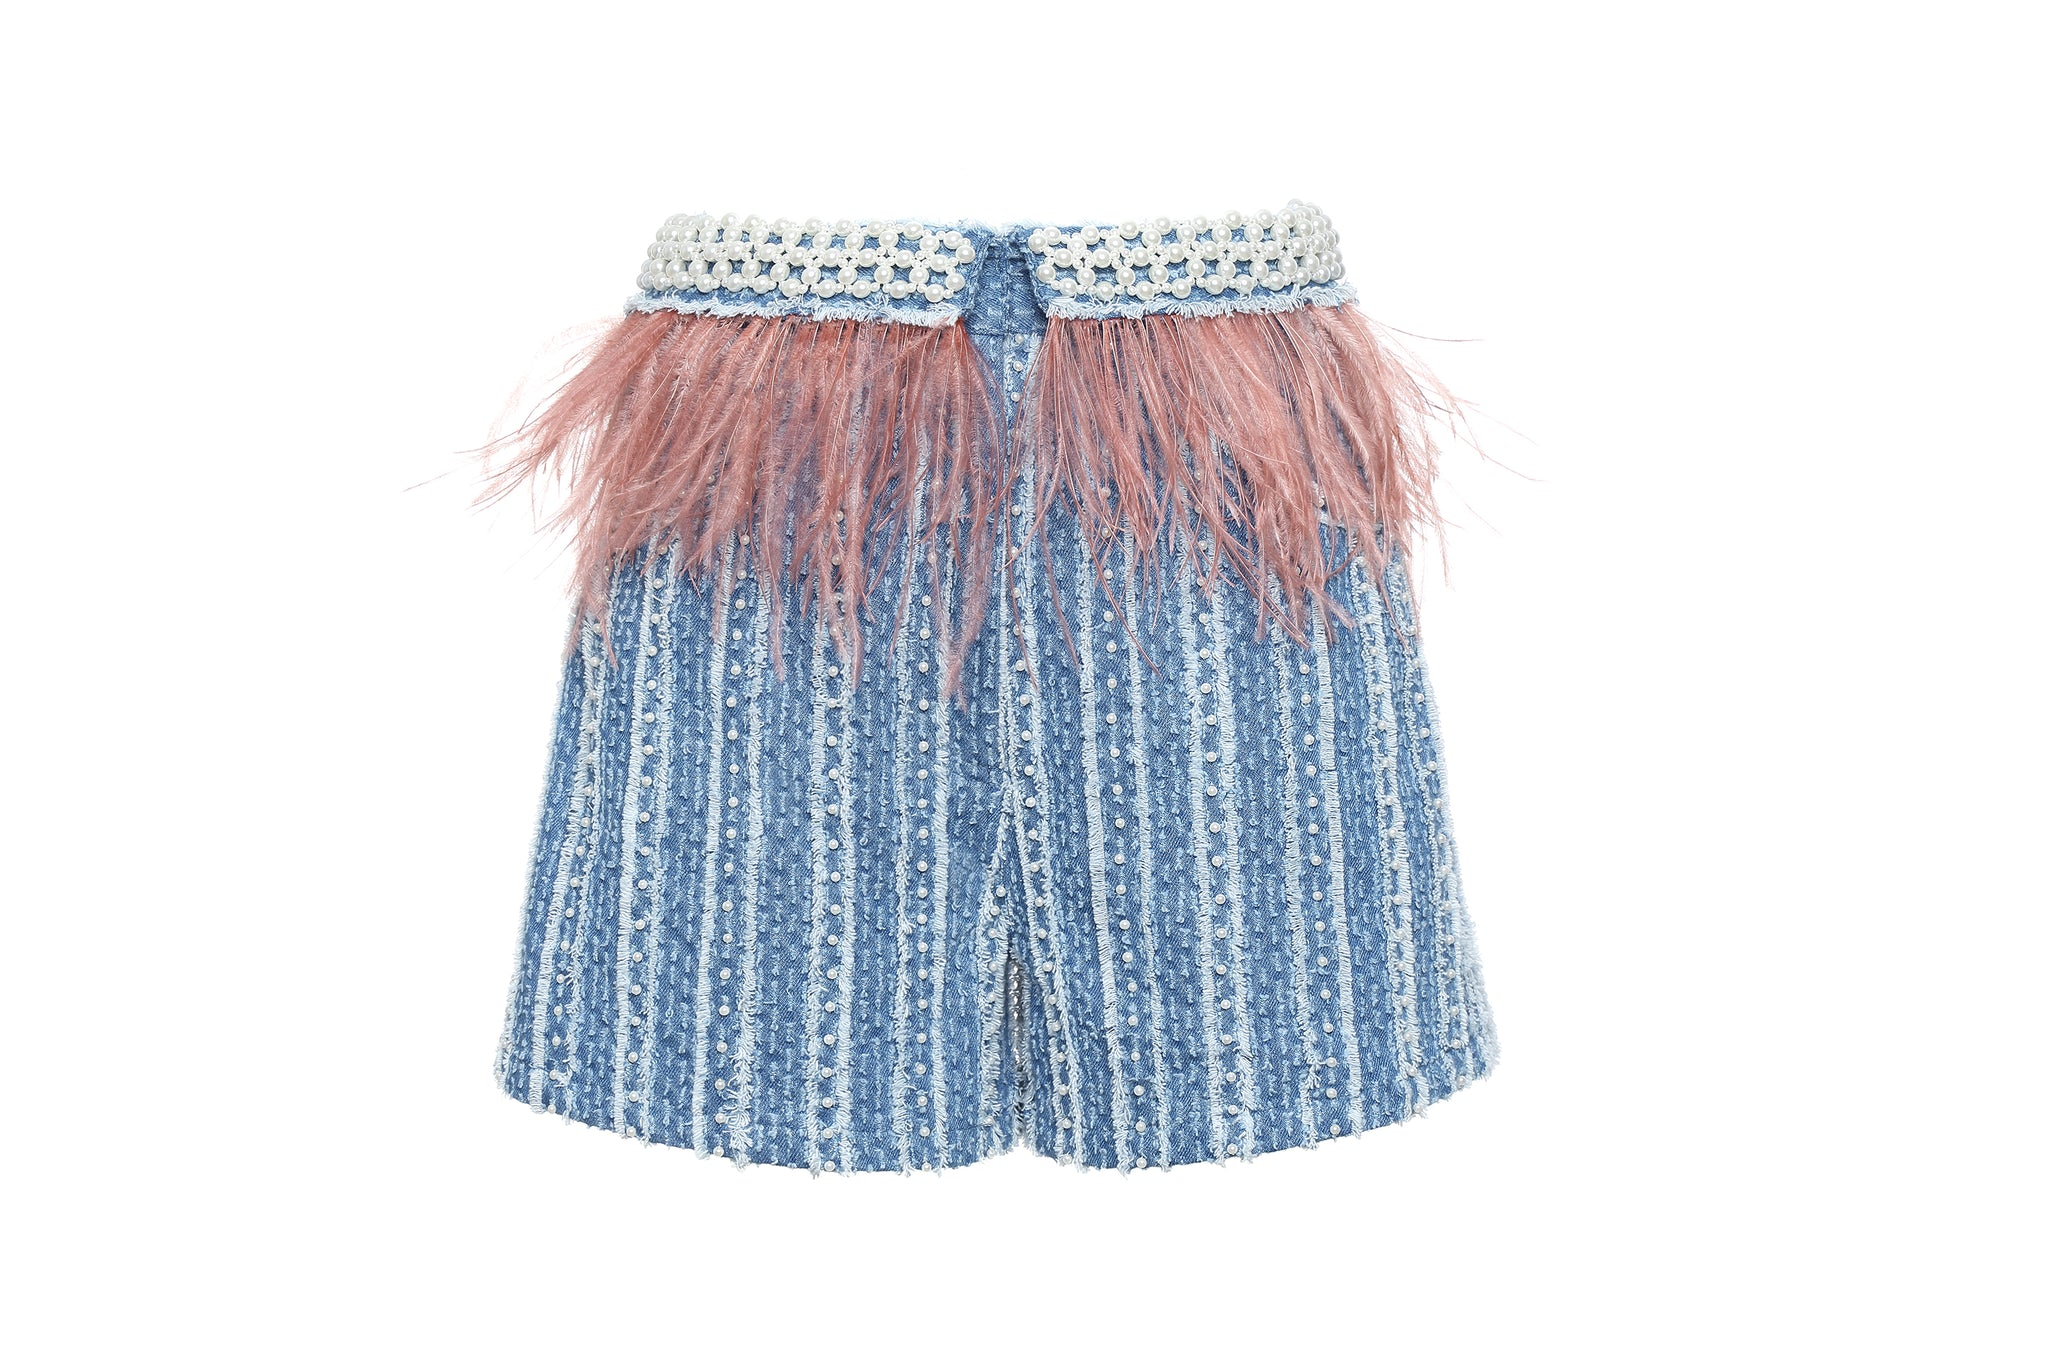 Shorts, Denim wth Stripes, Pearls and Ostrich Feathers Embellishment